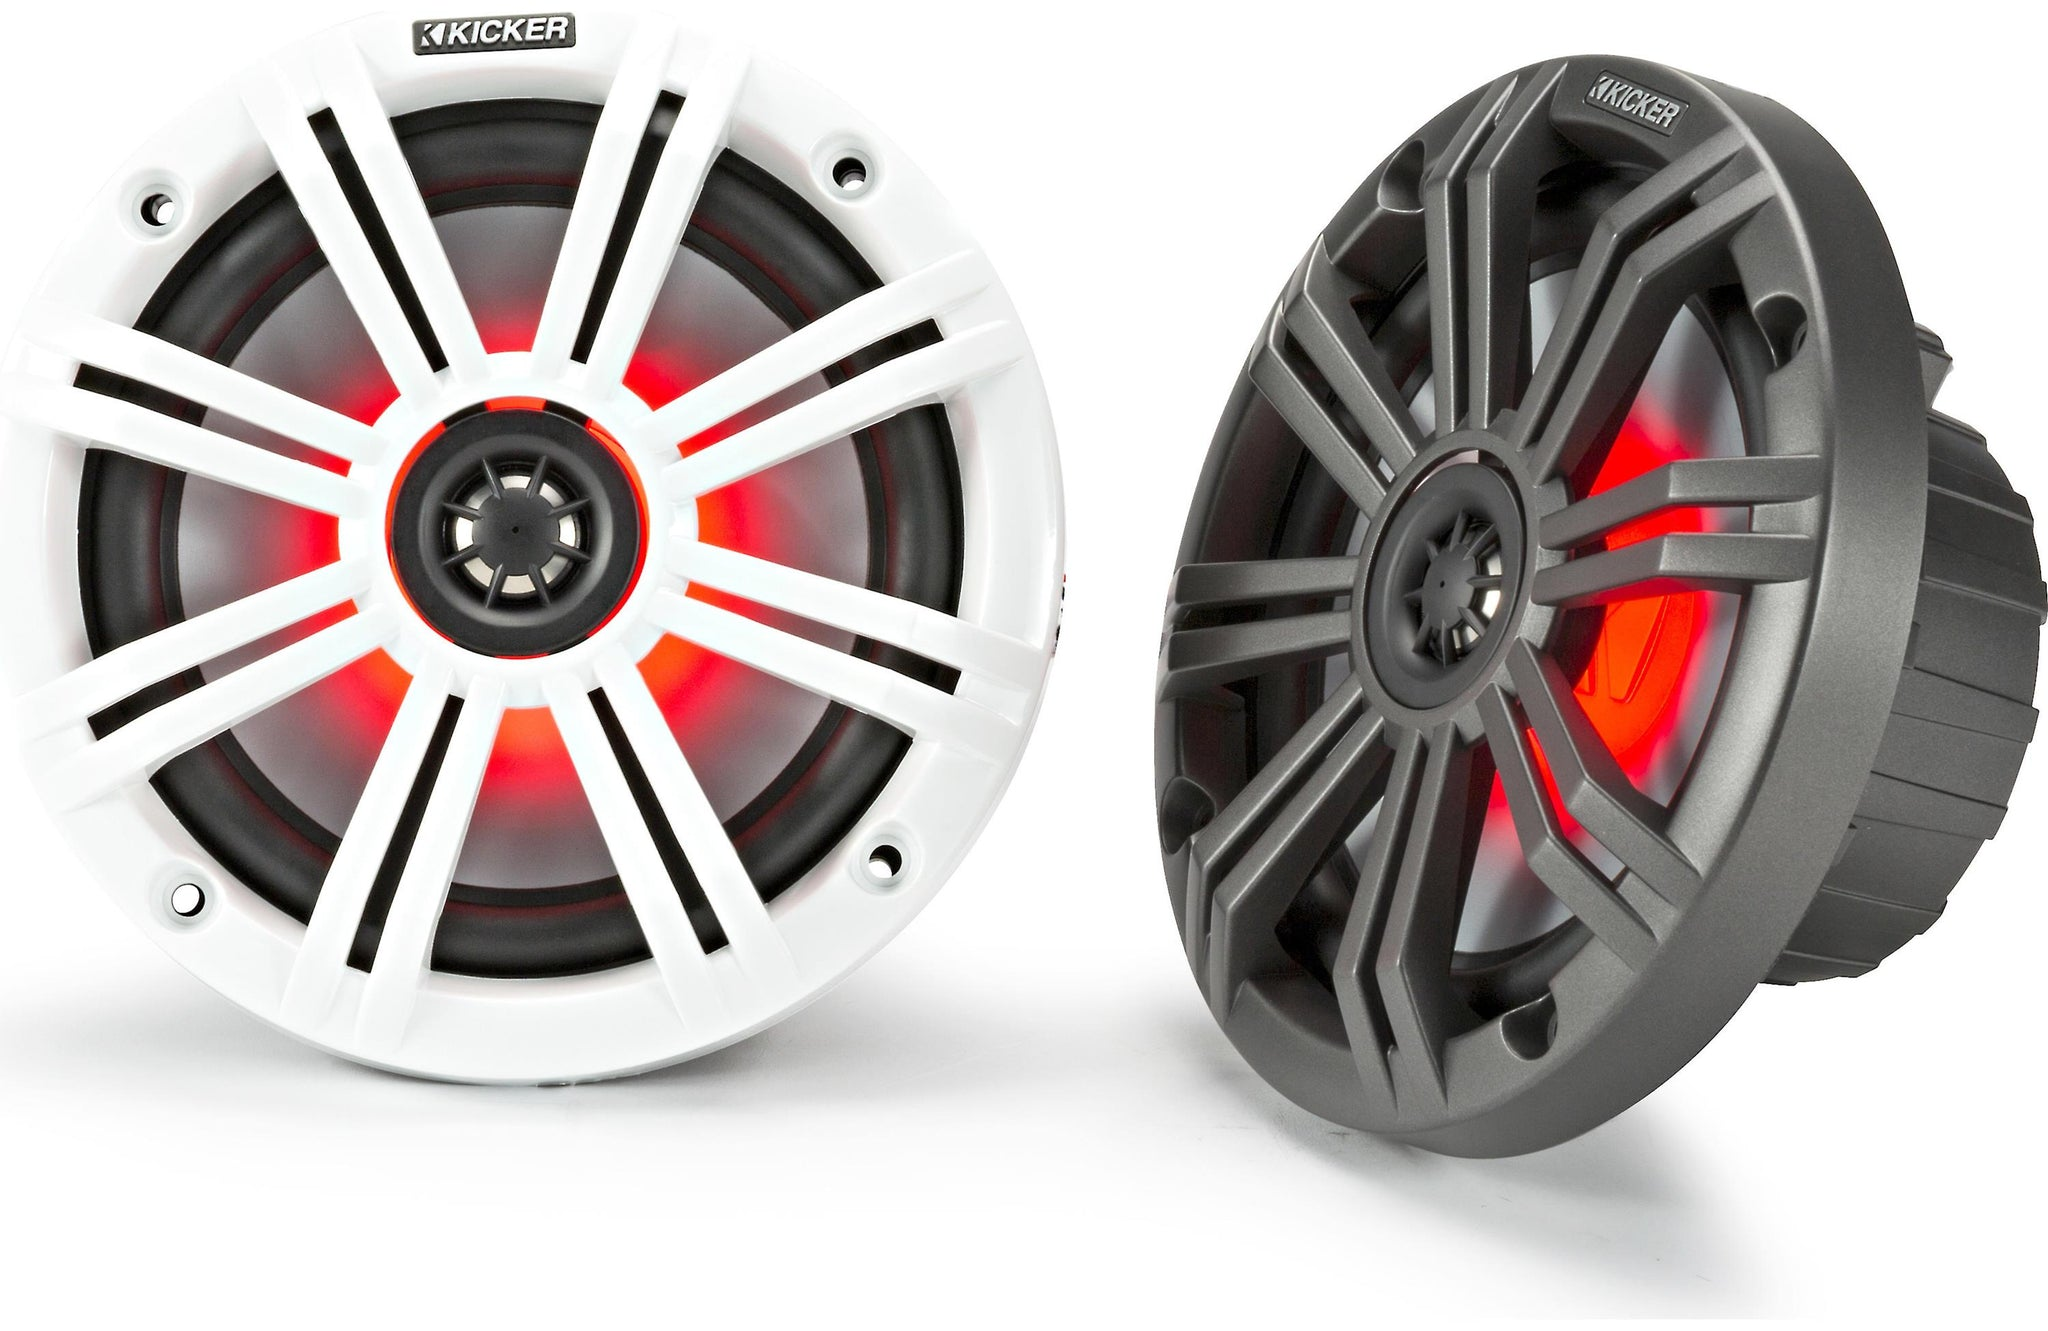 "Kicker 45KM654L 6-1/2"" 2-Way Marine Speakers With LED Lighting"